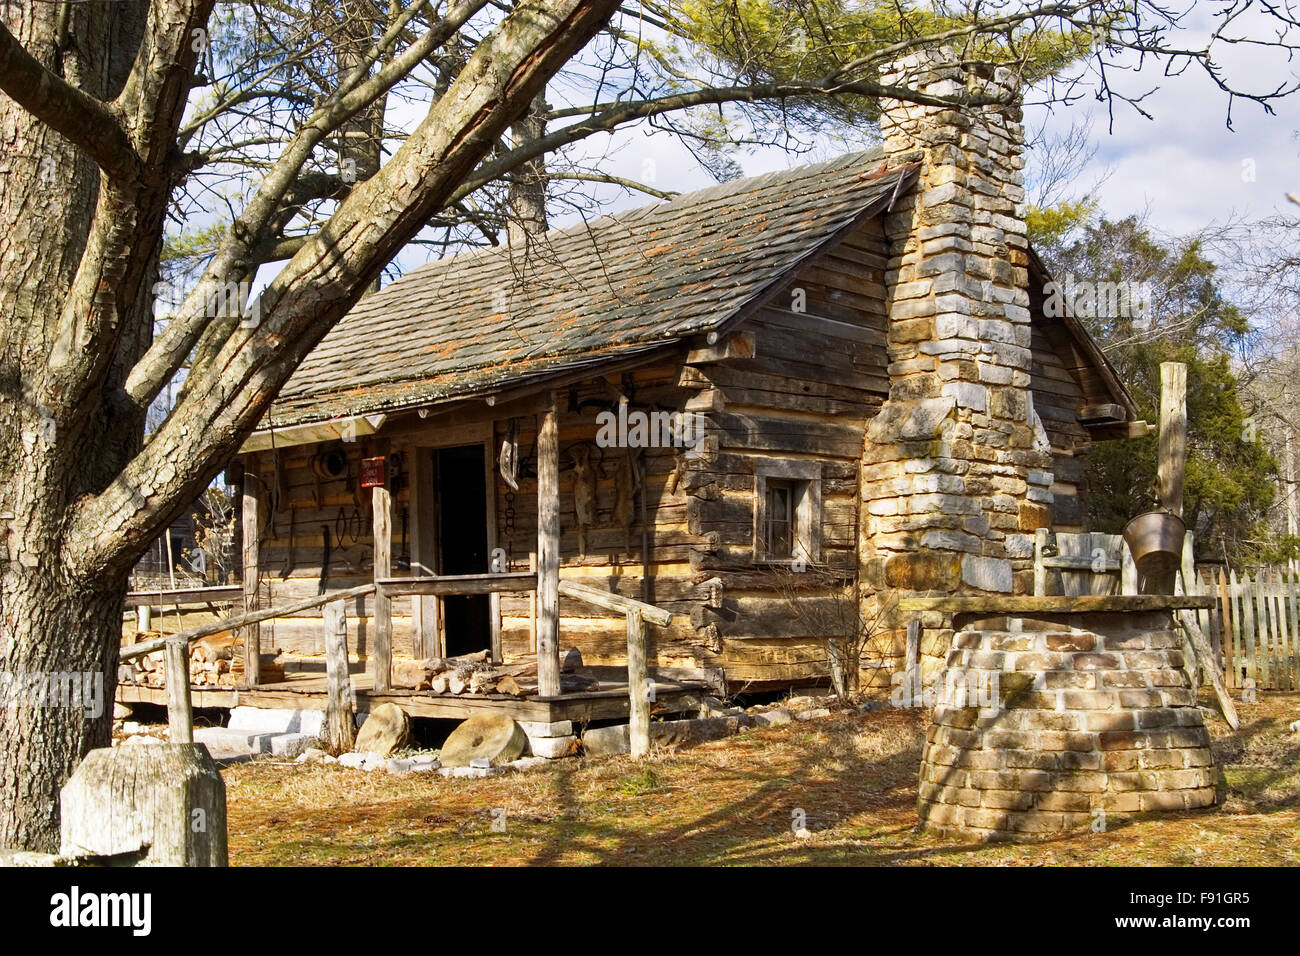 Old Log Cabin At The Museum Of Appalachia Tennessee Usa